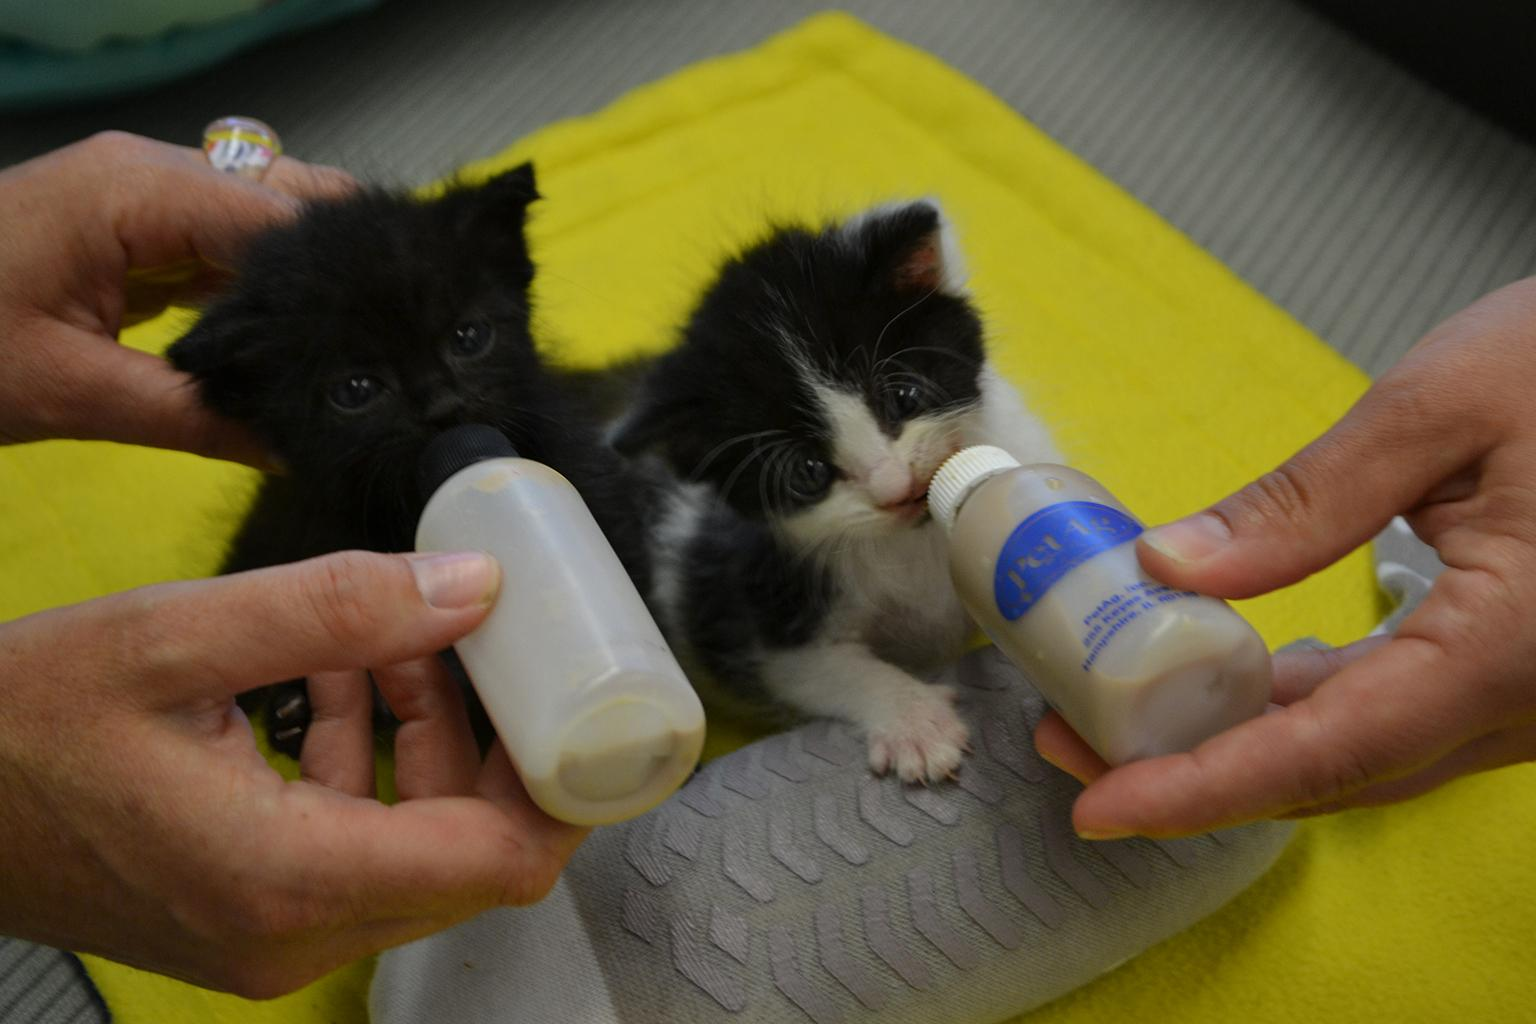 Now 4 weeks old, kittens Jesus, left, and Juan were brought to Chicago Animal Care and Control when they were 1 week old, following a rainstorm that separated them from their mother. (Alex Ruppenthal / Chicago Tonight)